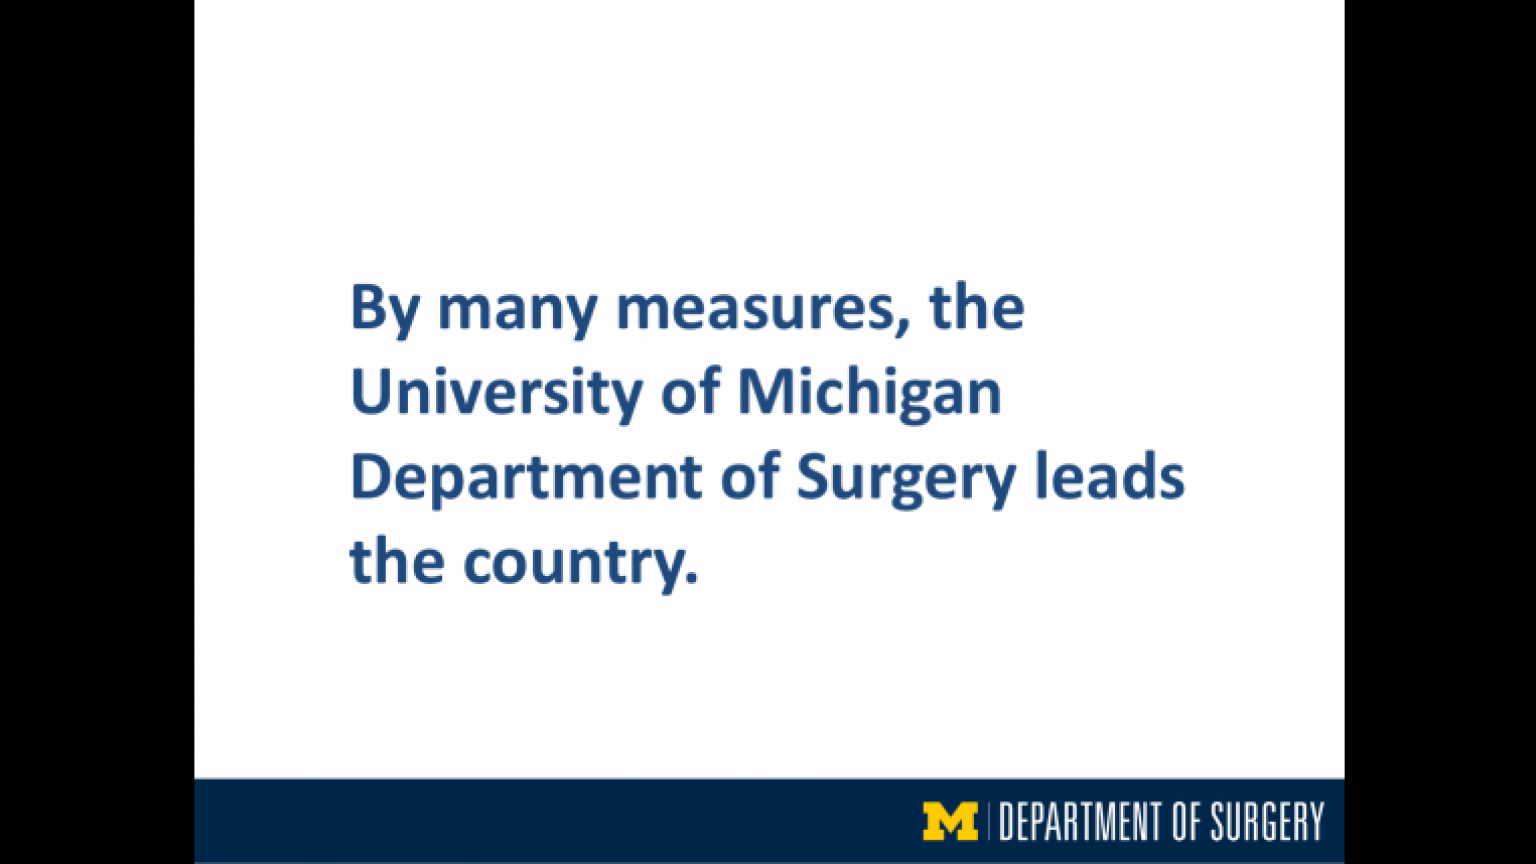 """""""By many measures, the University of Michigan Department of Surgery leads the country""""- second slide of """"This Is What We Stand For"""" presentation"""